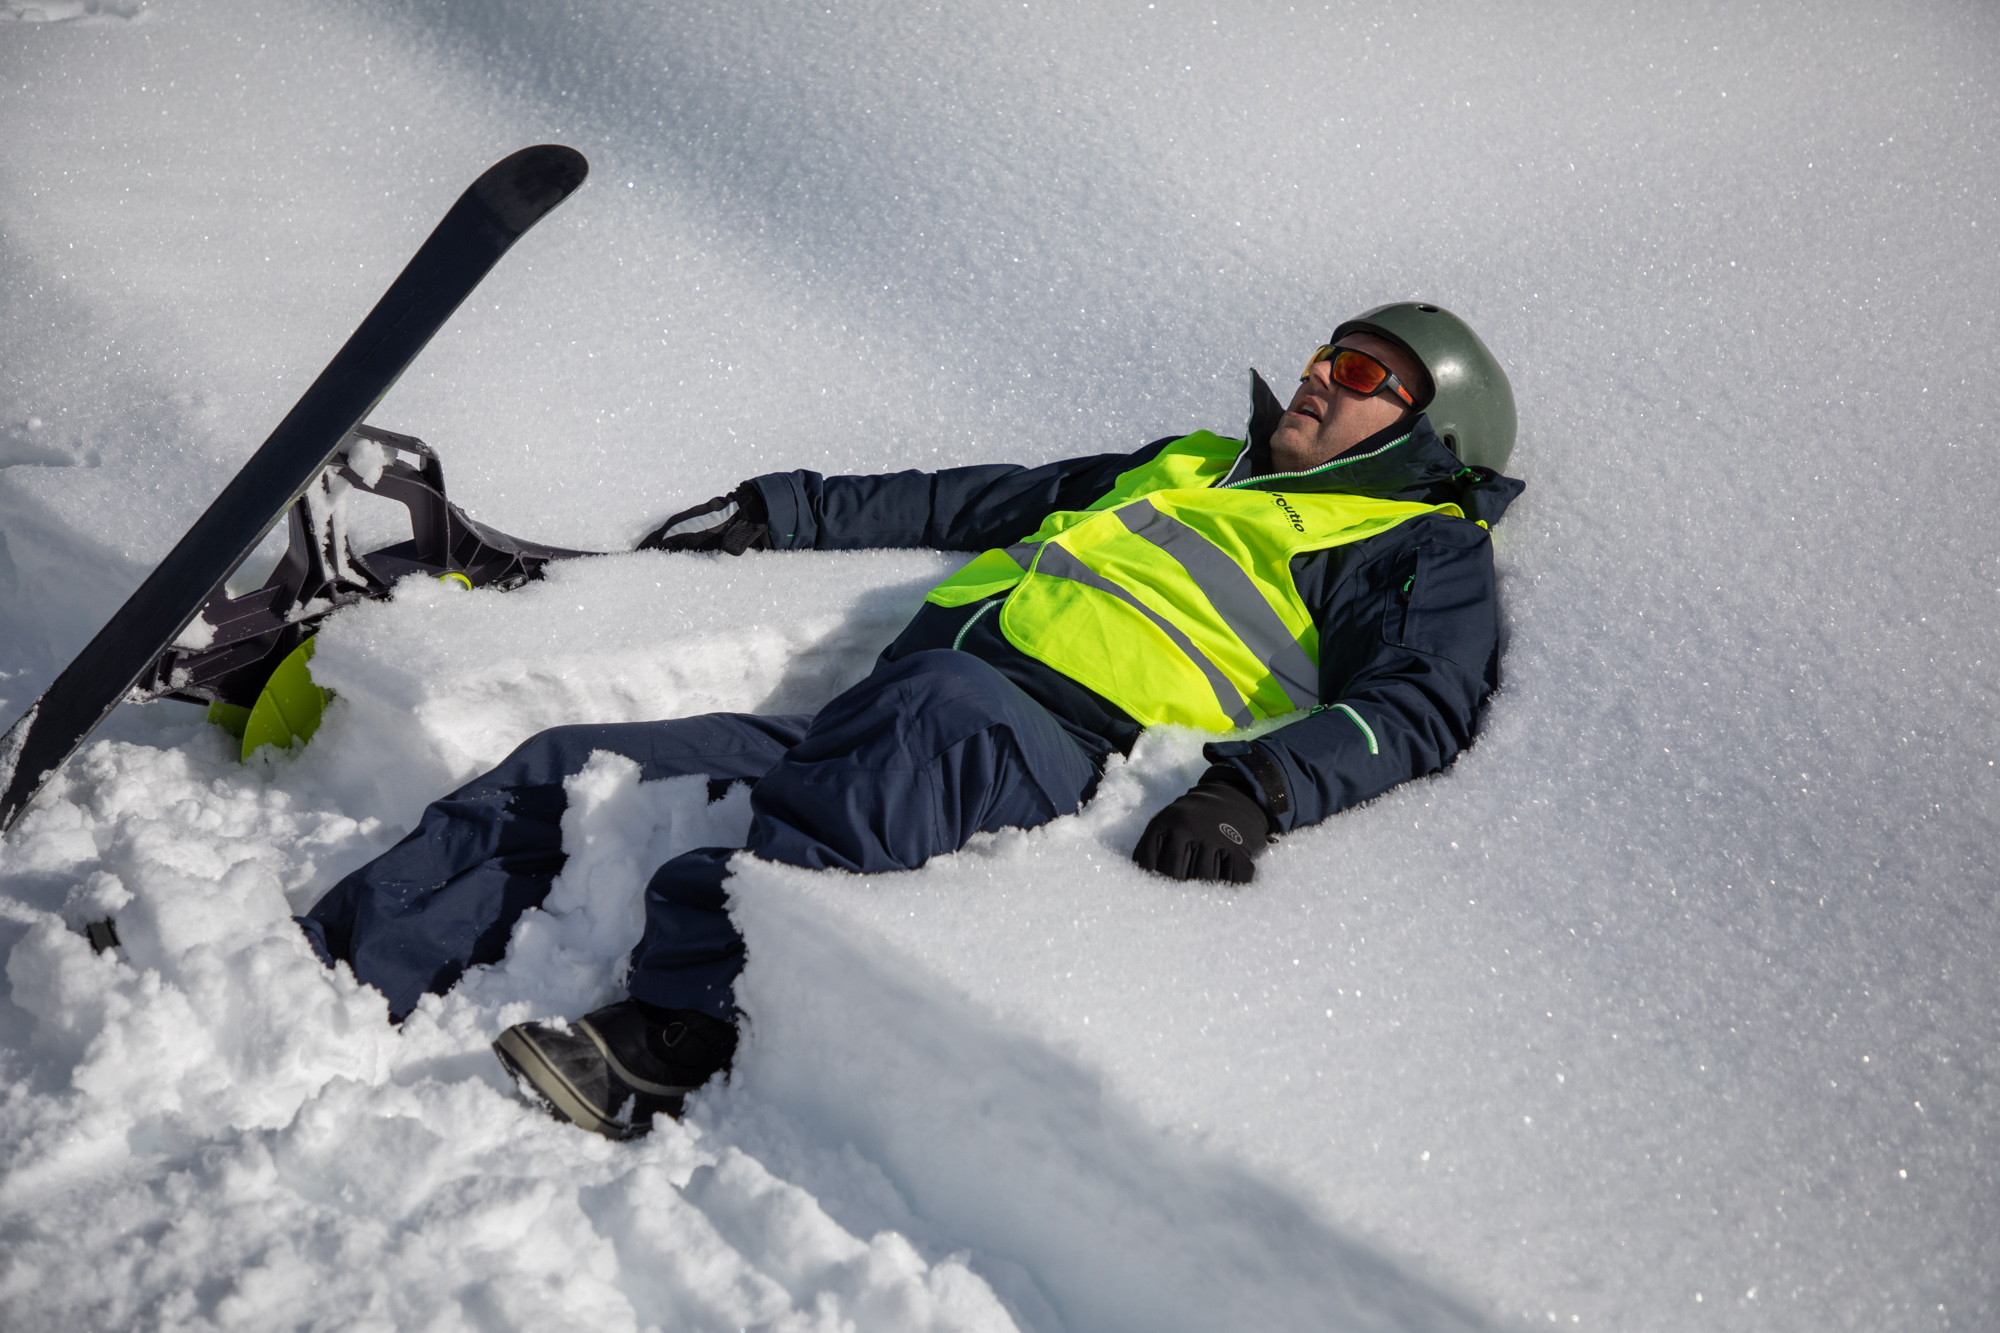 Break_The_Ice_LaClusaz_2019_web-7219.jpg